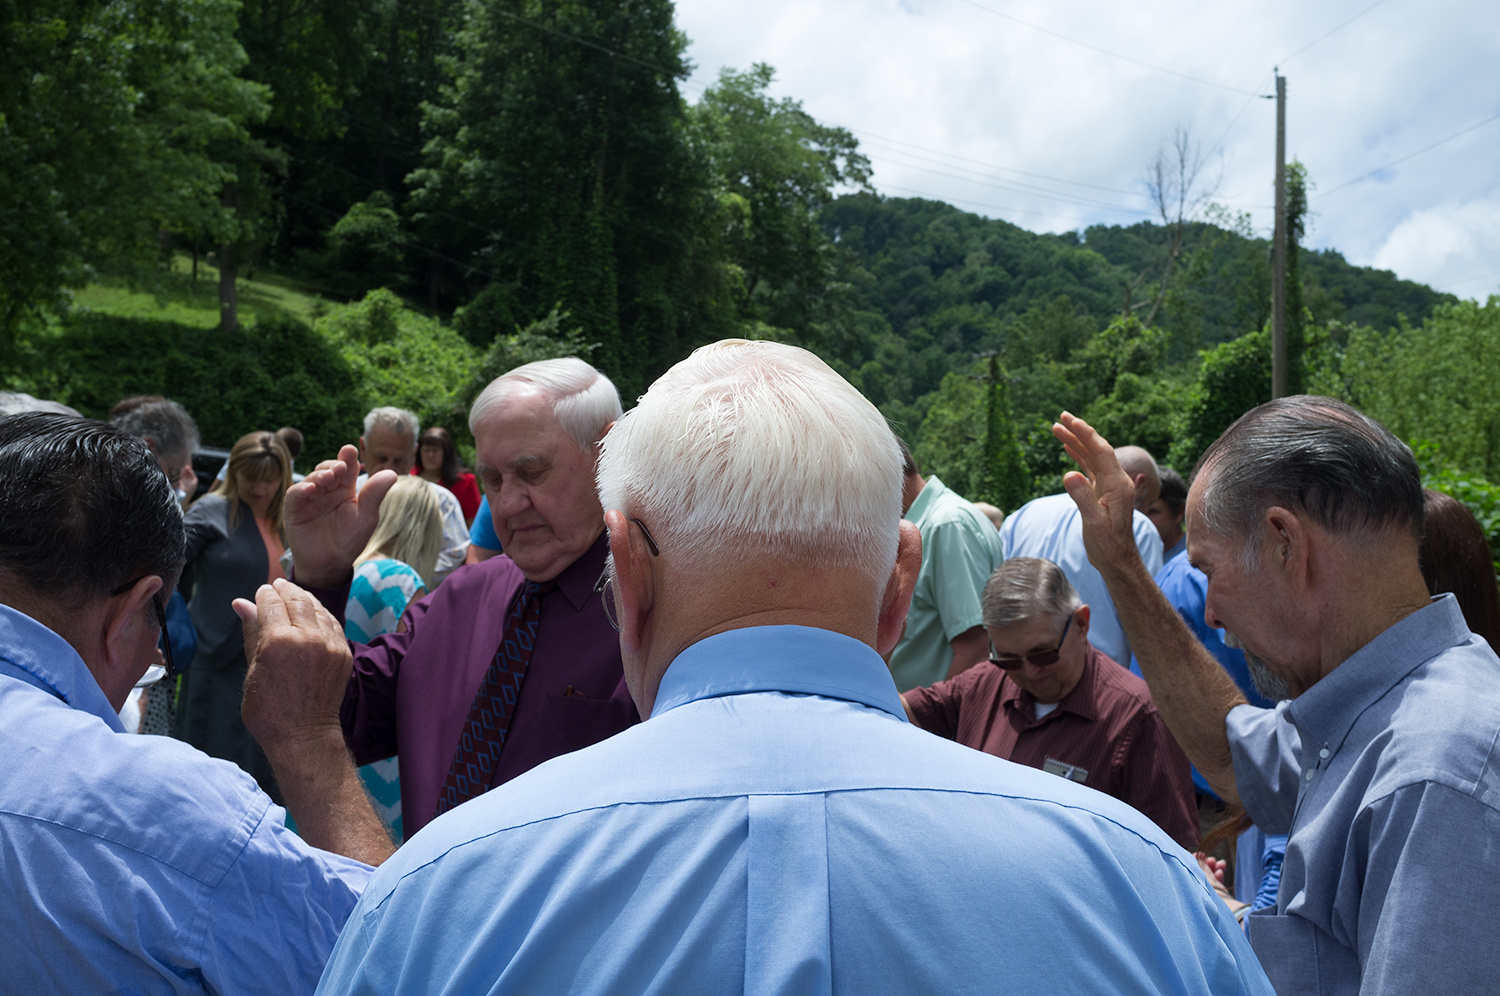 Roger May . July 5, 2015. Members of the Dix Fork Old Regular Baptist Church pray after baptizing Ruth Vanhoose, 84, of Chattaroy, West Virginia. She was baptized in Big Creek, Pike County, Kentucky, where members have been baptized for decades.